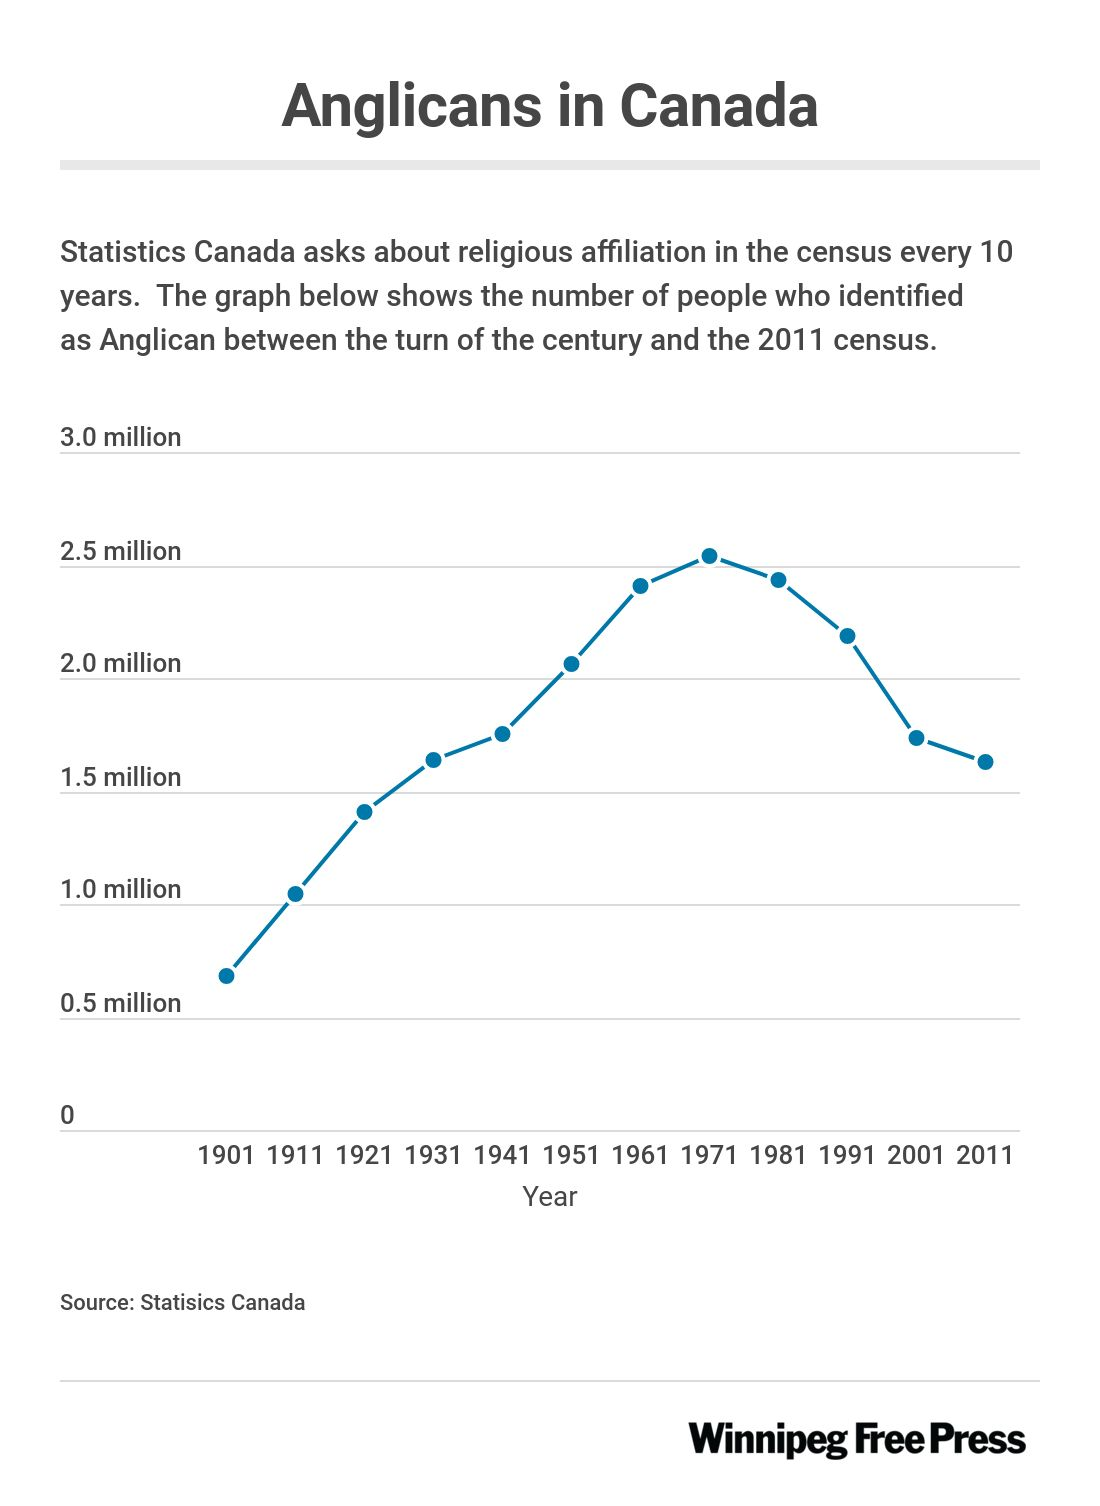 Graphic showing change in number of Canadians who say they are affiliated with the Anglican church between 1901 and 2011